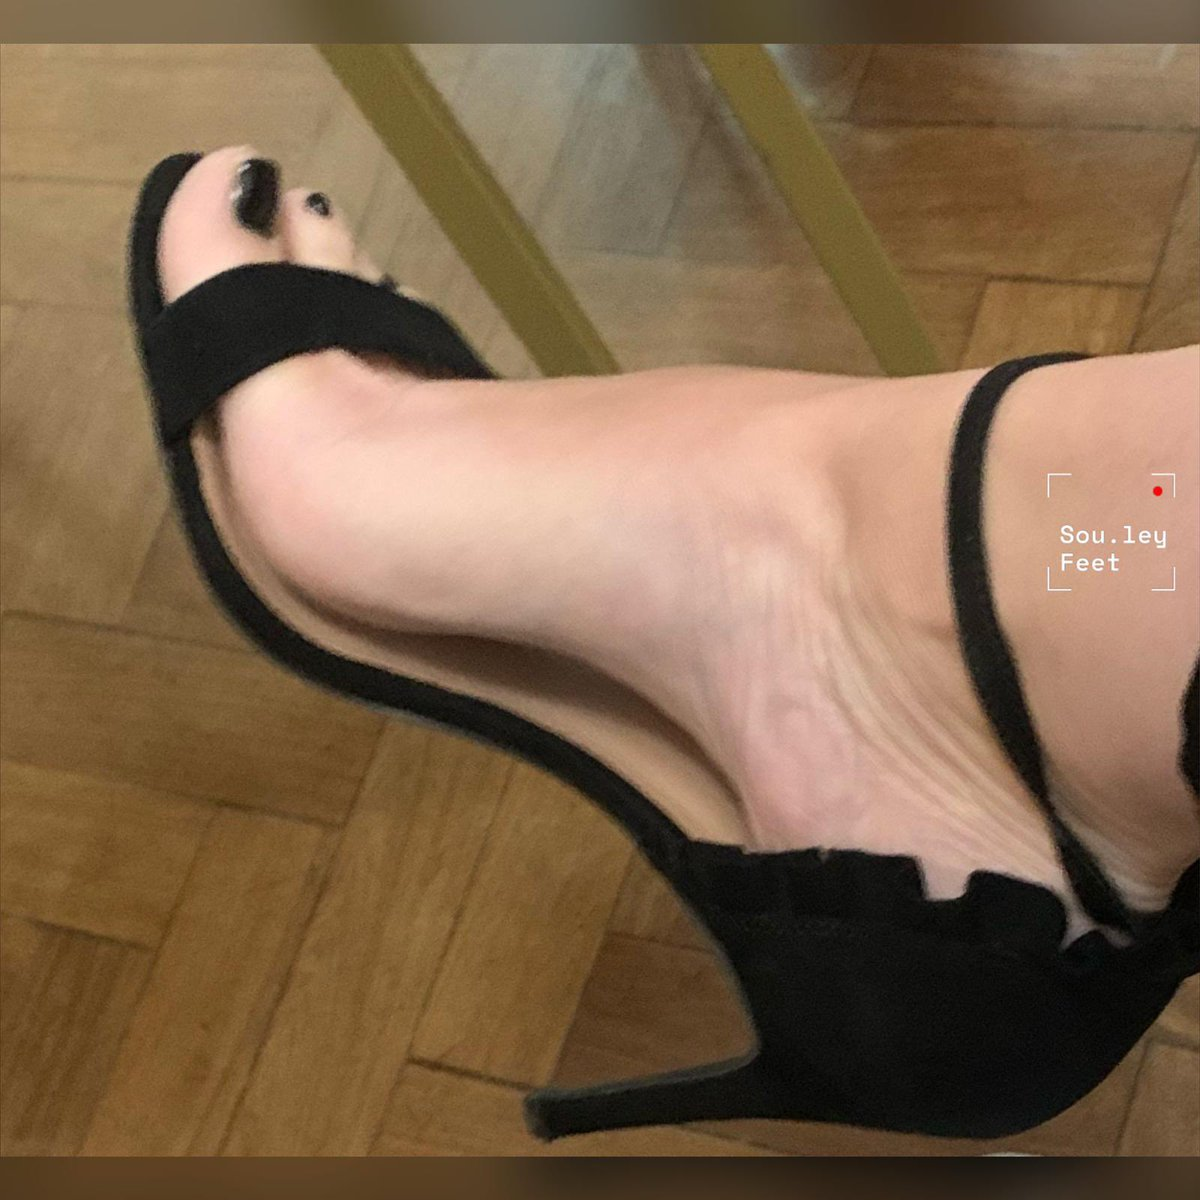 Matching toes and heels 👠 #heelworship #heels #toe #toejob #toes #arch